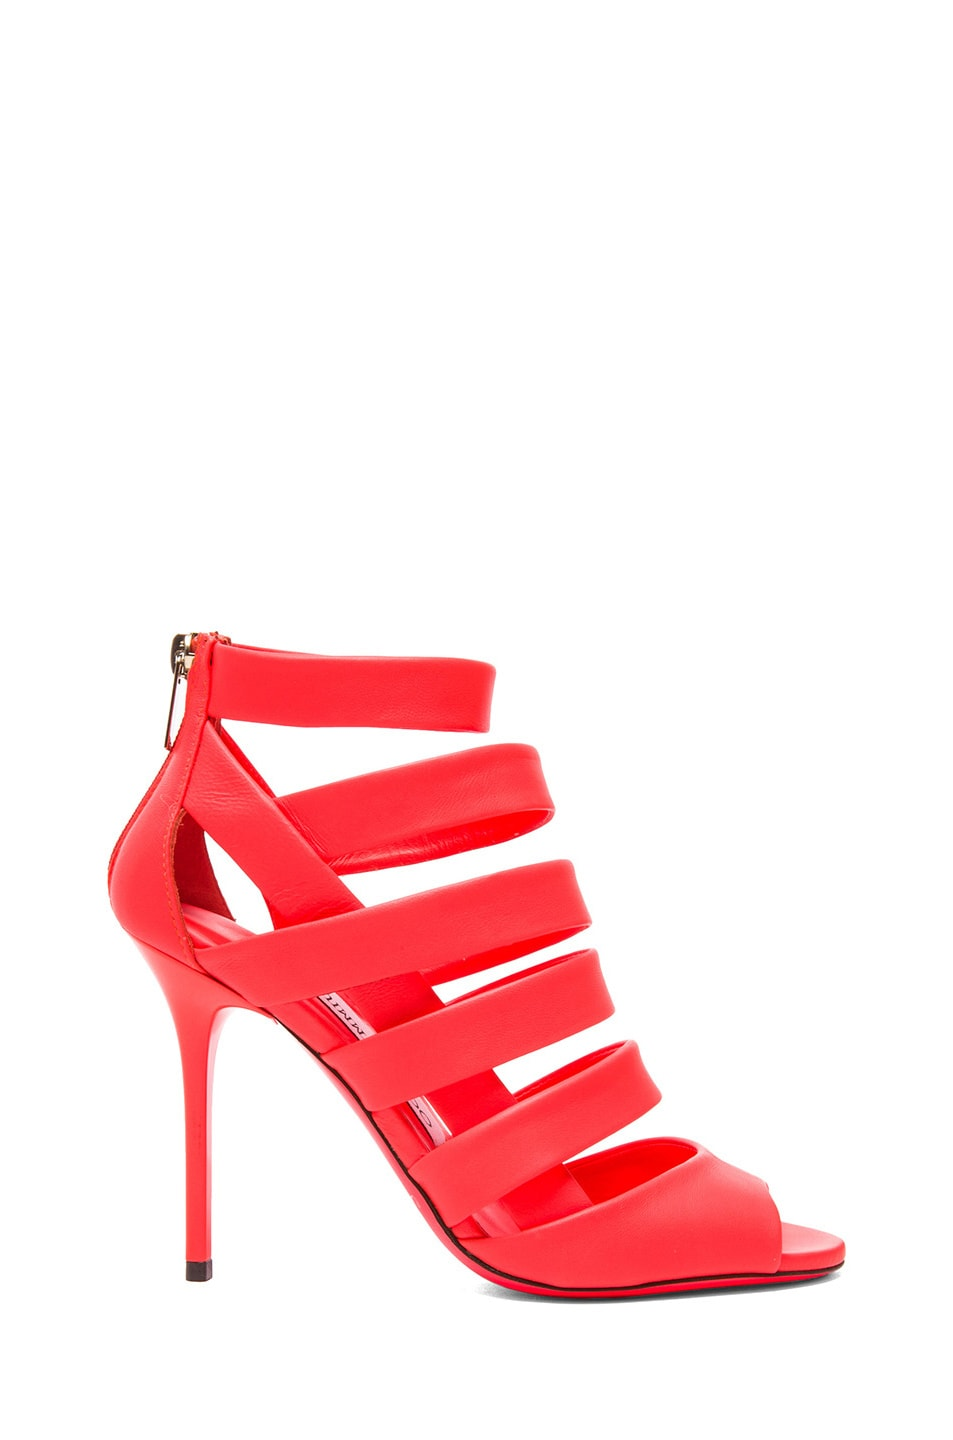 Image 1 of Jimmy Choo Dame Nappa Leather Heeled Sandals in Neon Flame